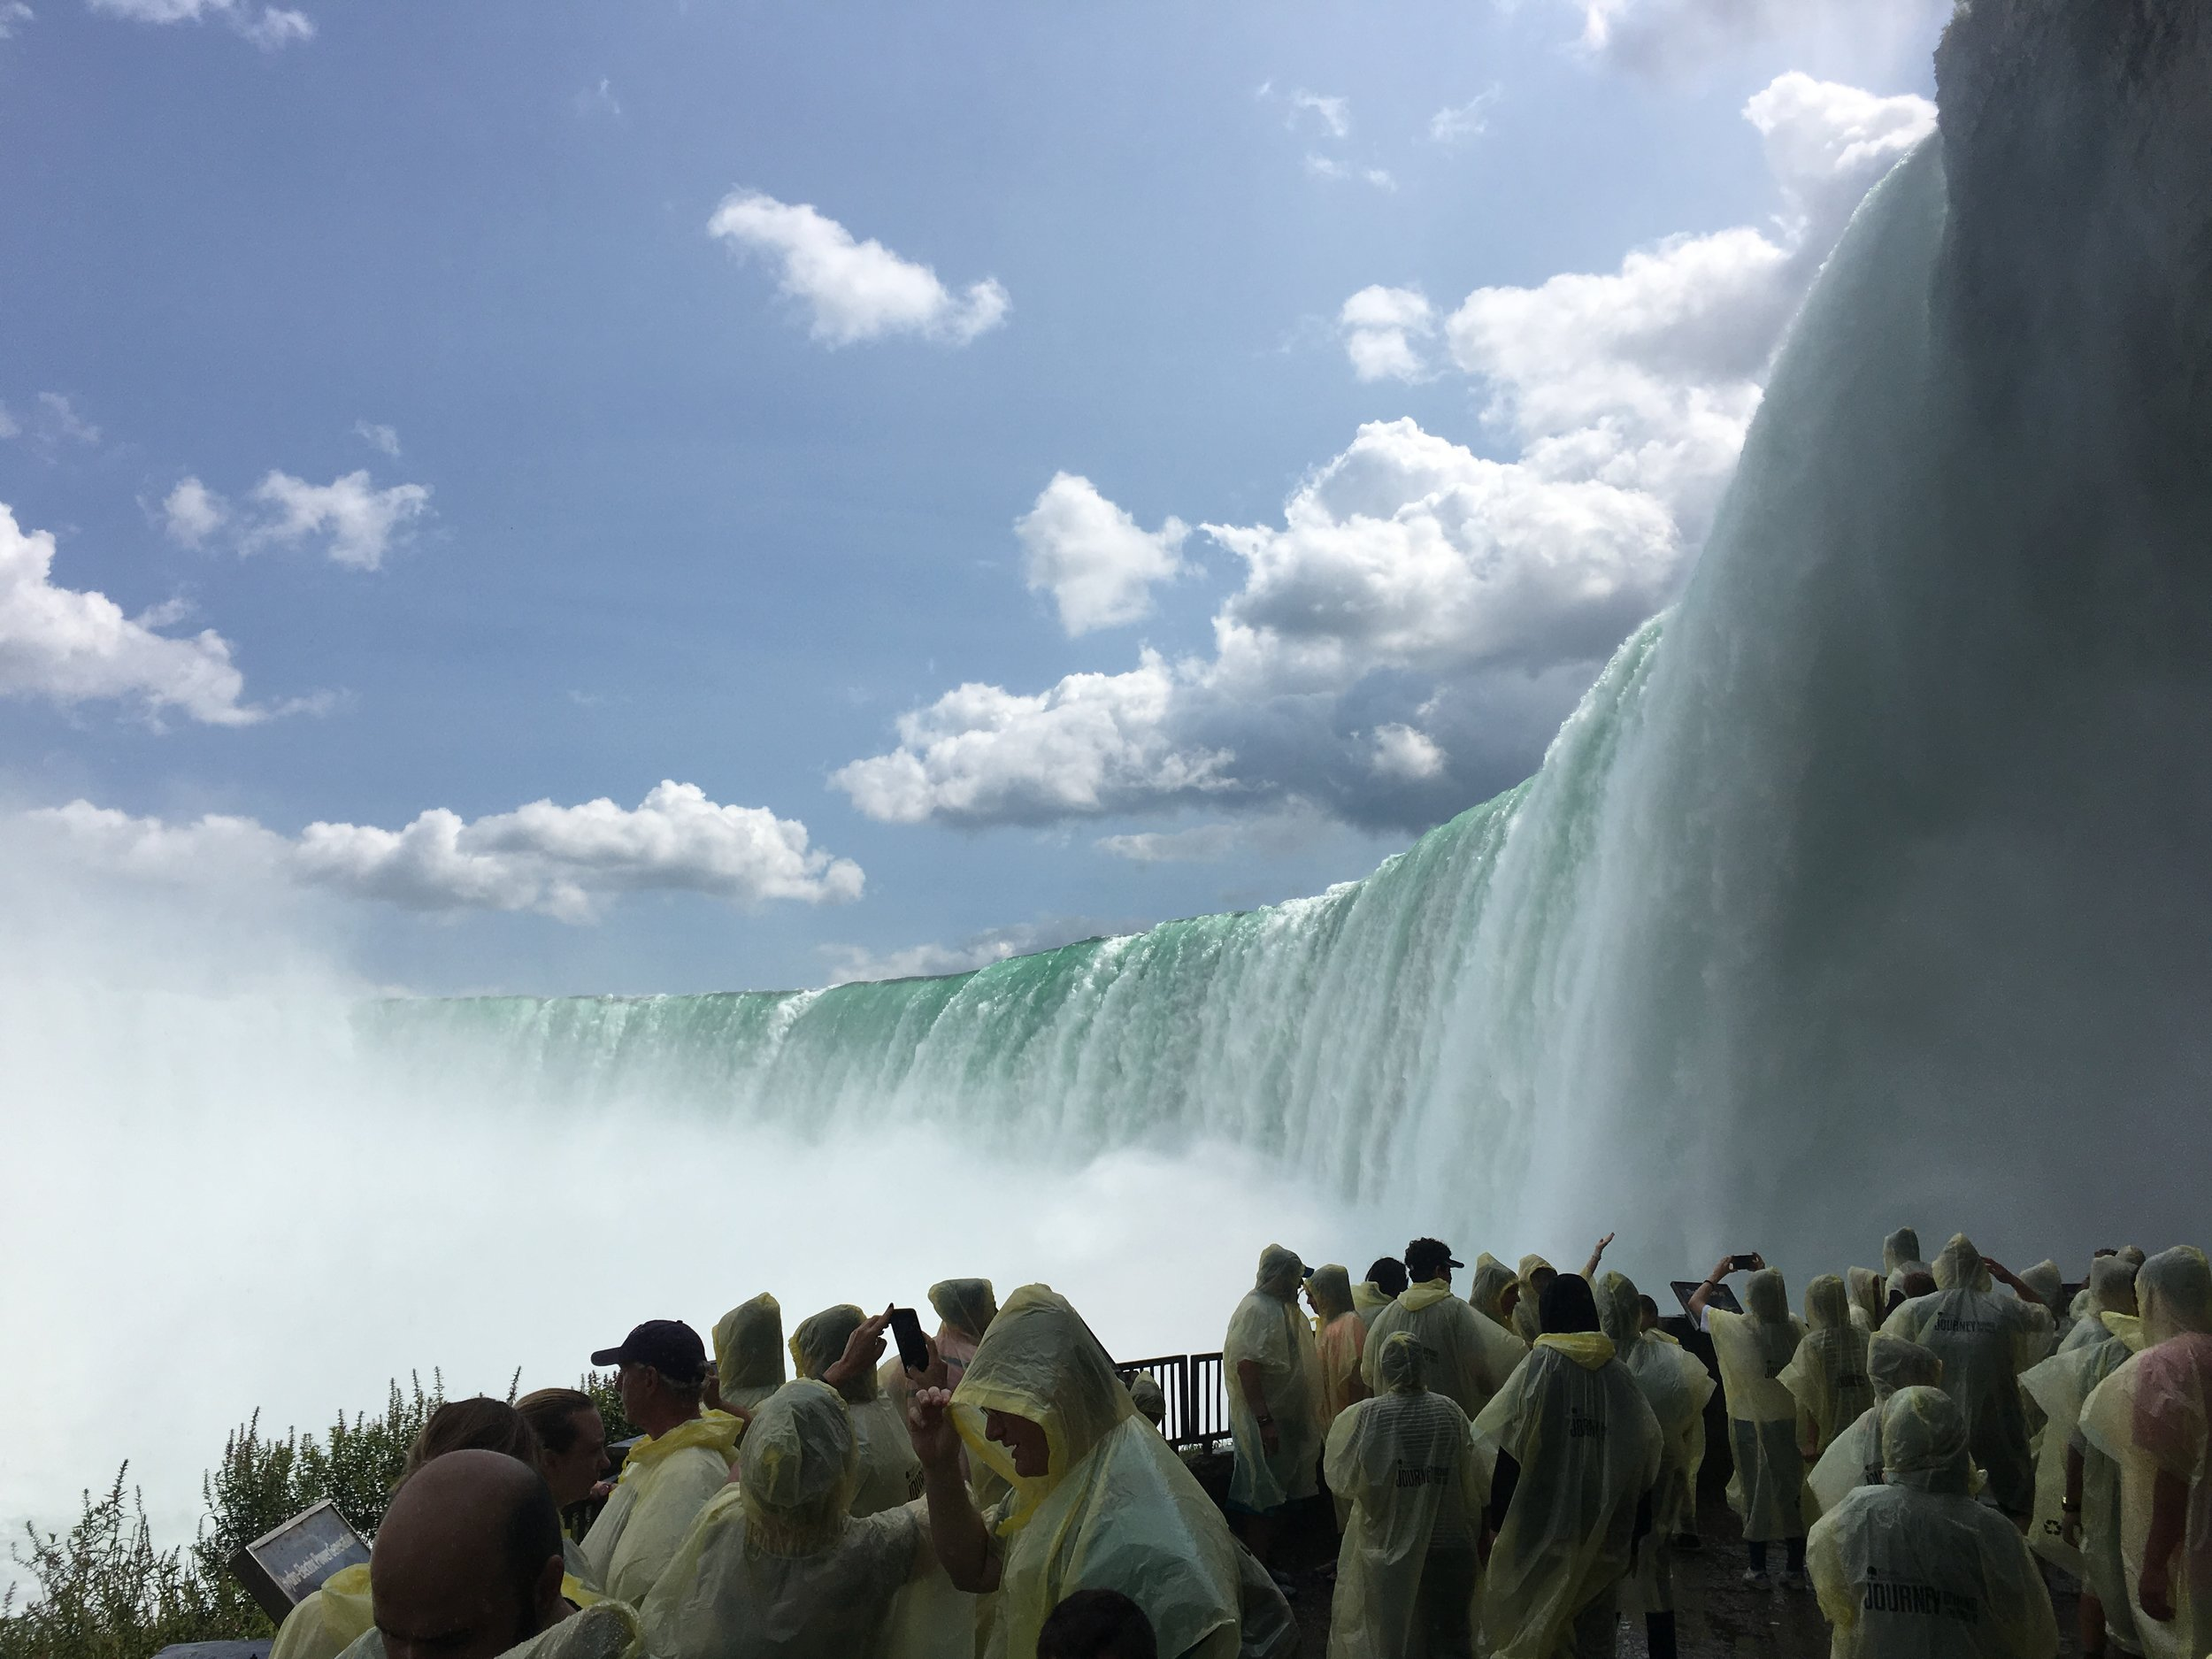 One of the highlights of the summer was seeing Niagara Falls for the first time